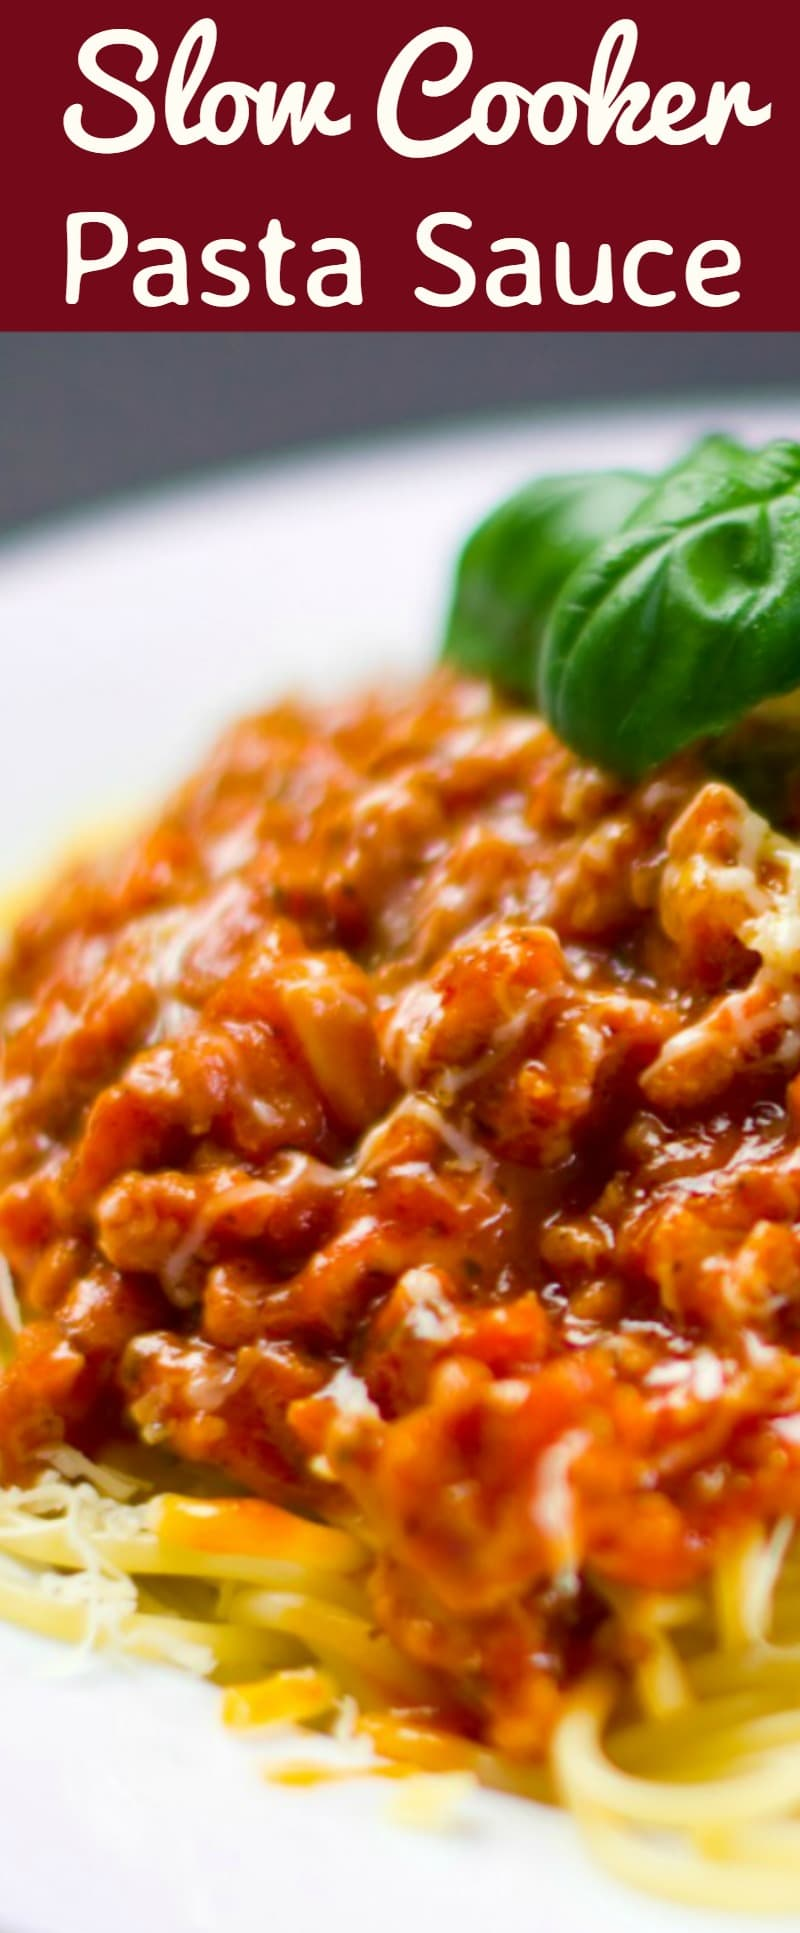 Slow Cooker Pasta Sauce with great ingredients. Delicious homemade goodness and freezer friendly too! | Lovefoodies.com